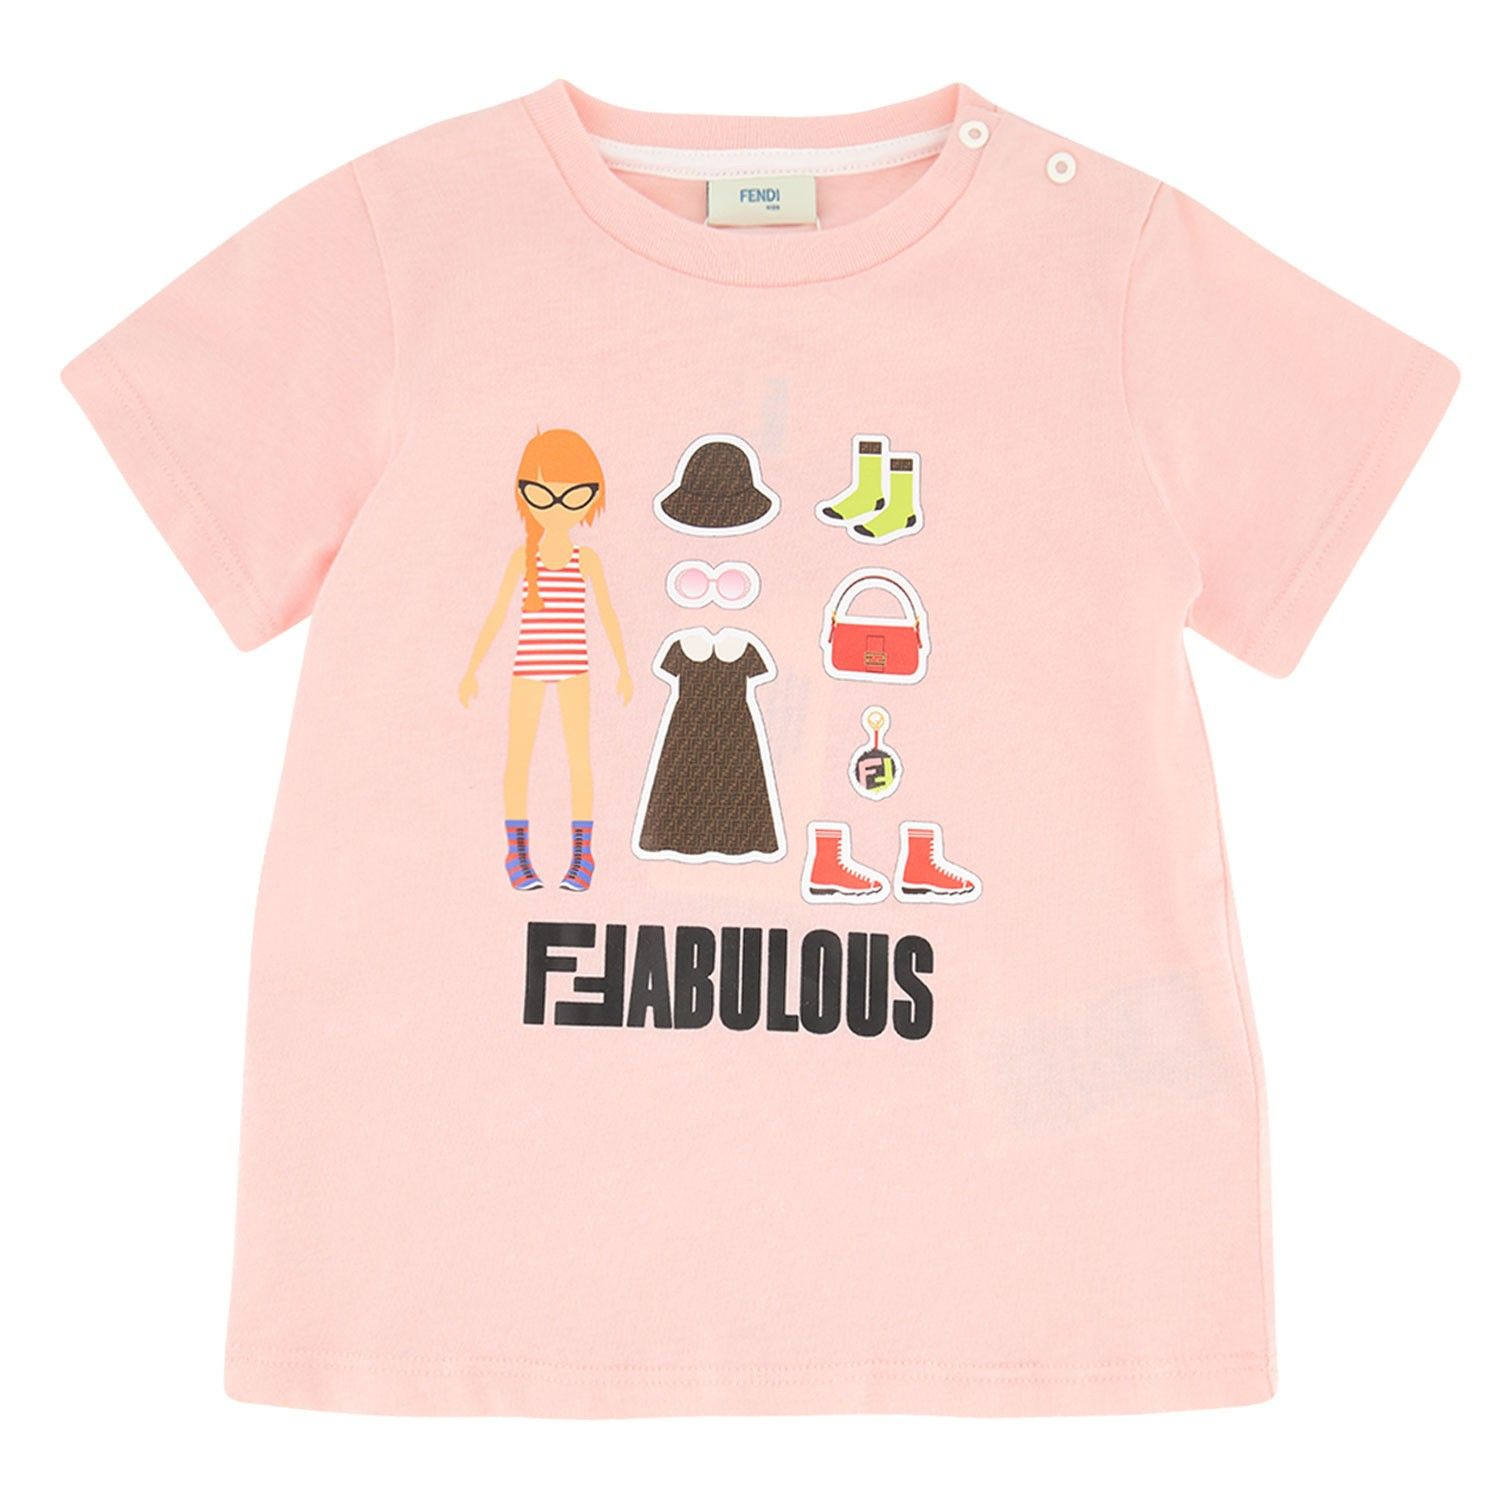 Picture of Fendi BFI115 baby shirt light pink